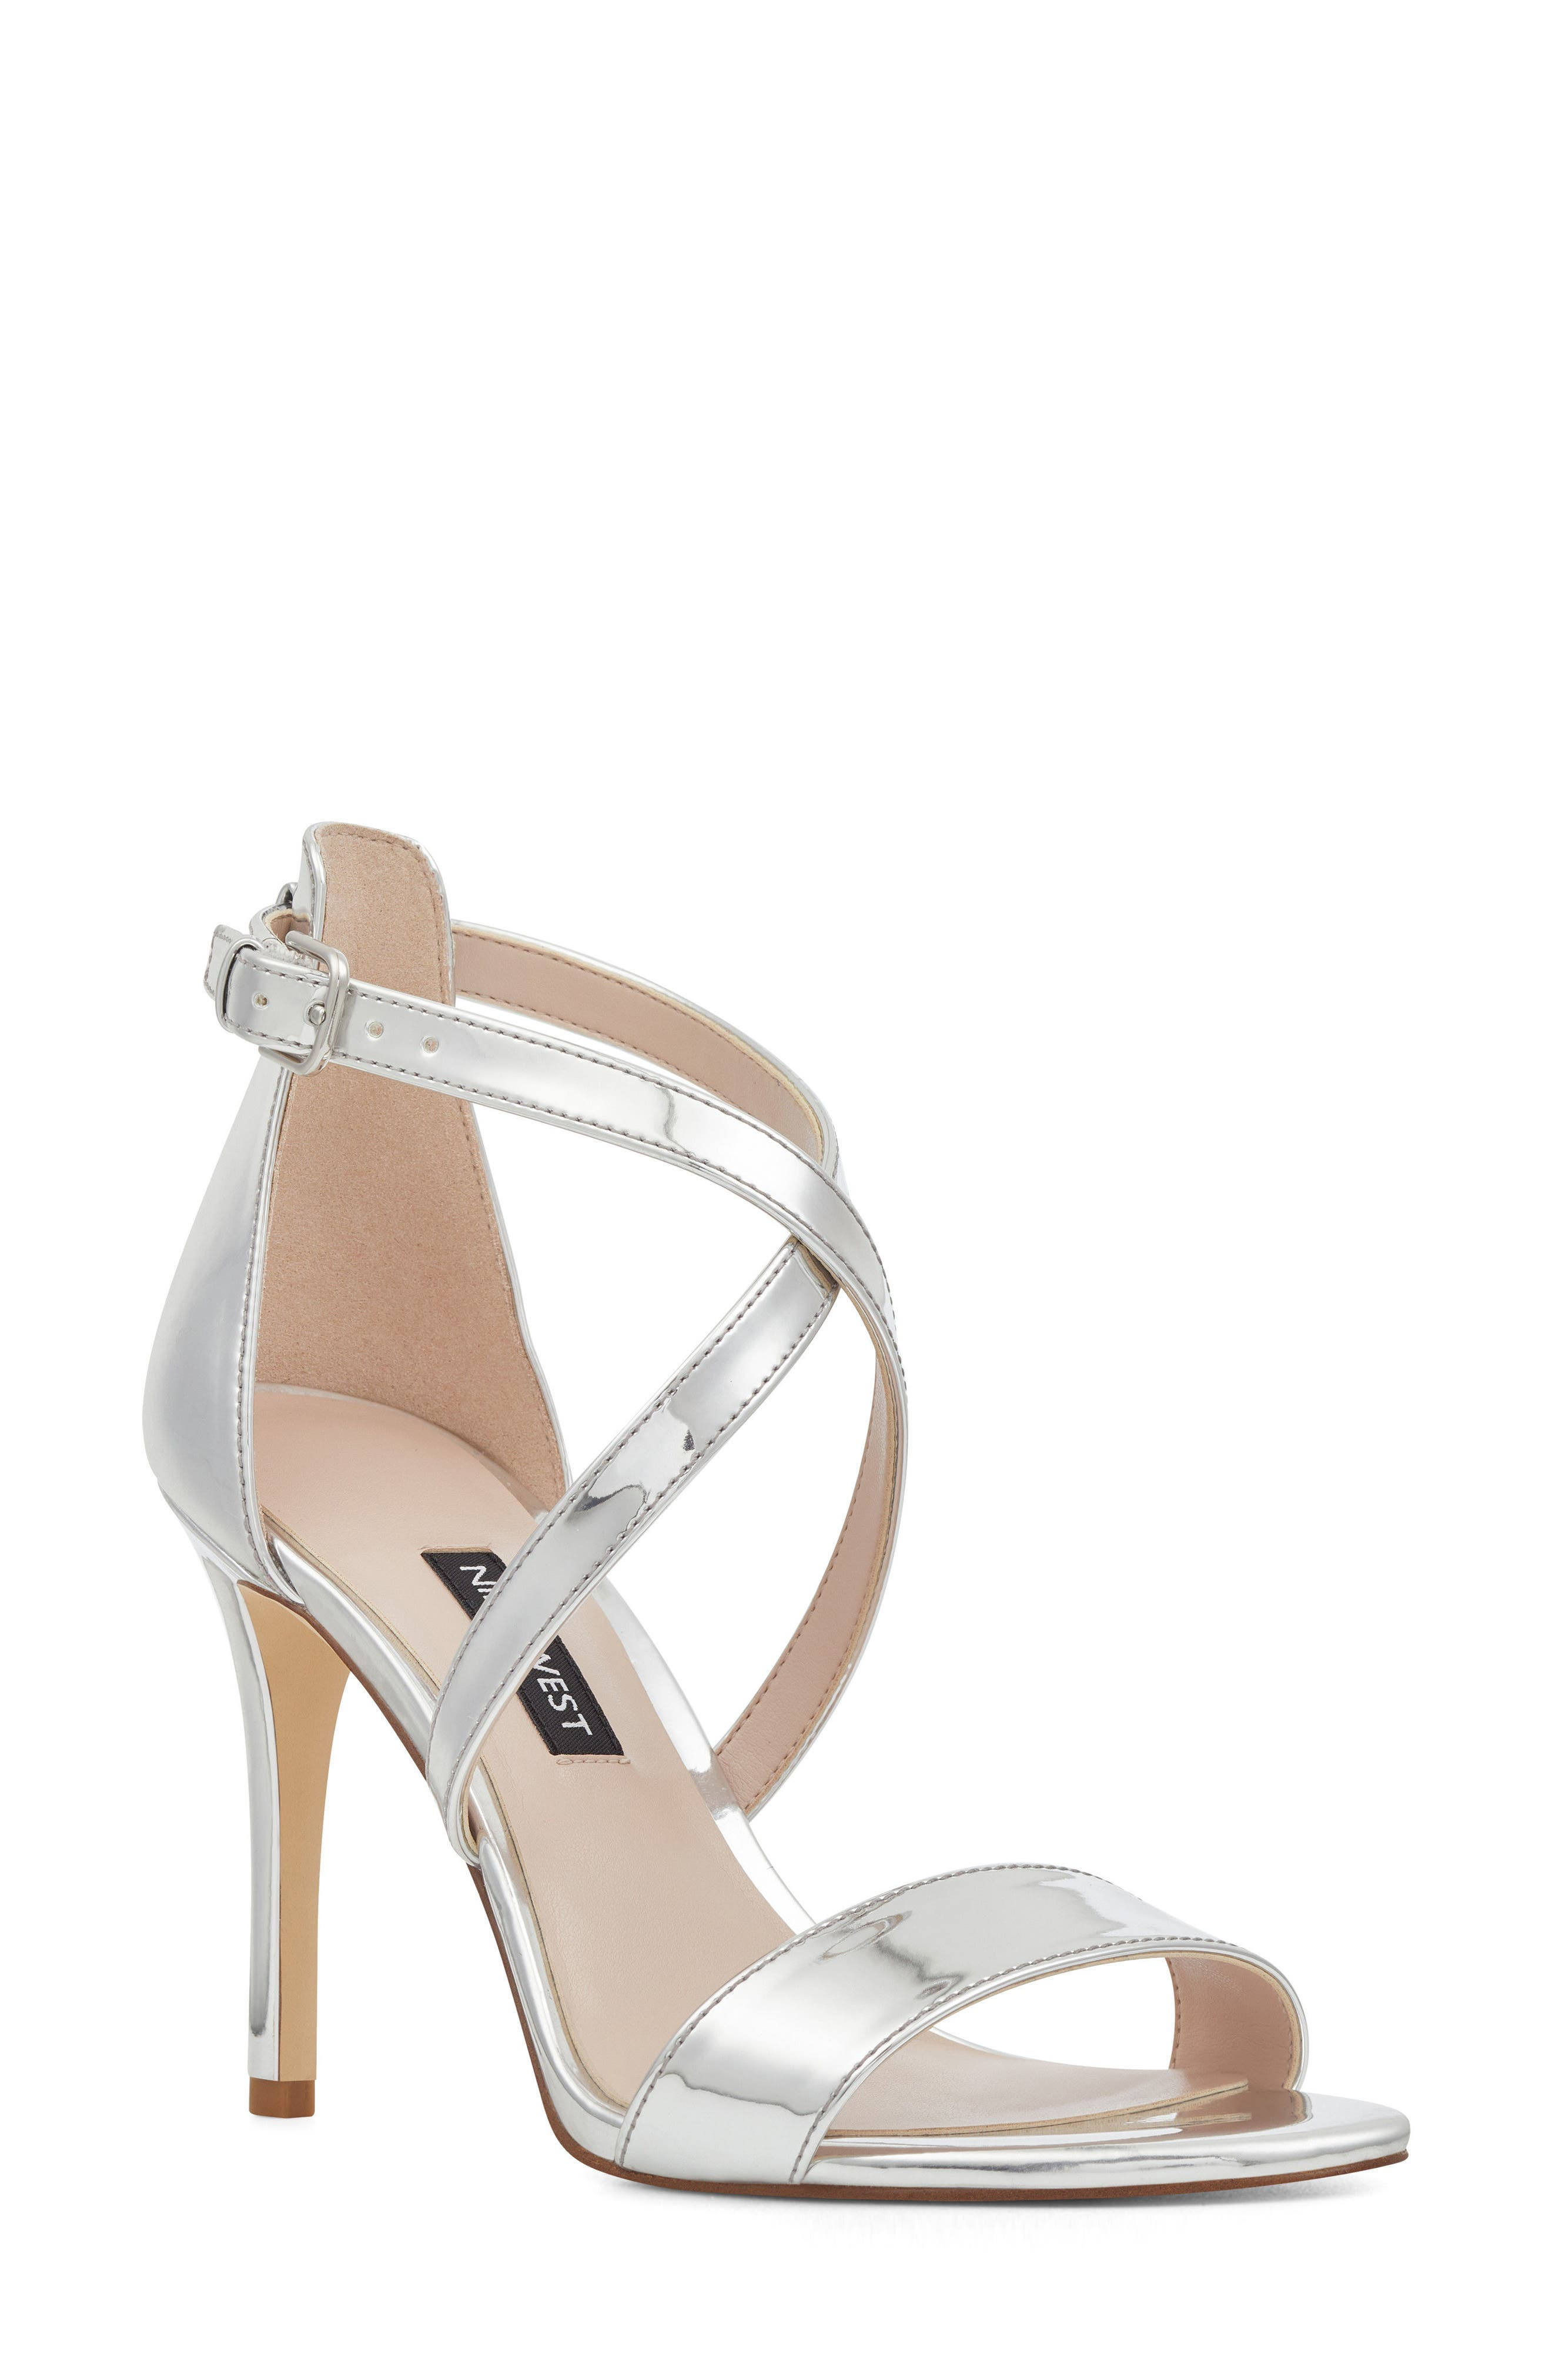 Main Image - Nine West Mydebut Strappy Sandal (Women)